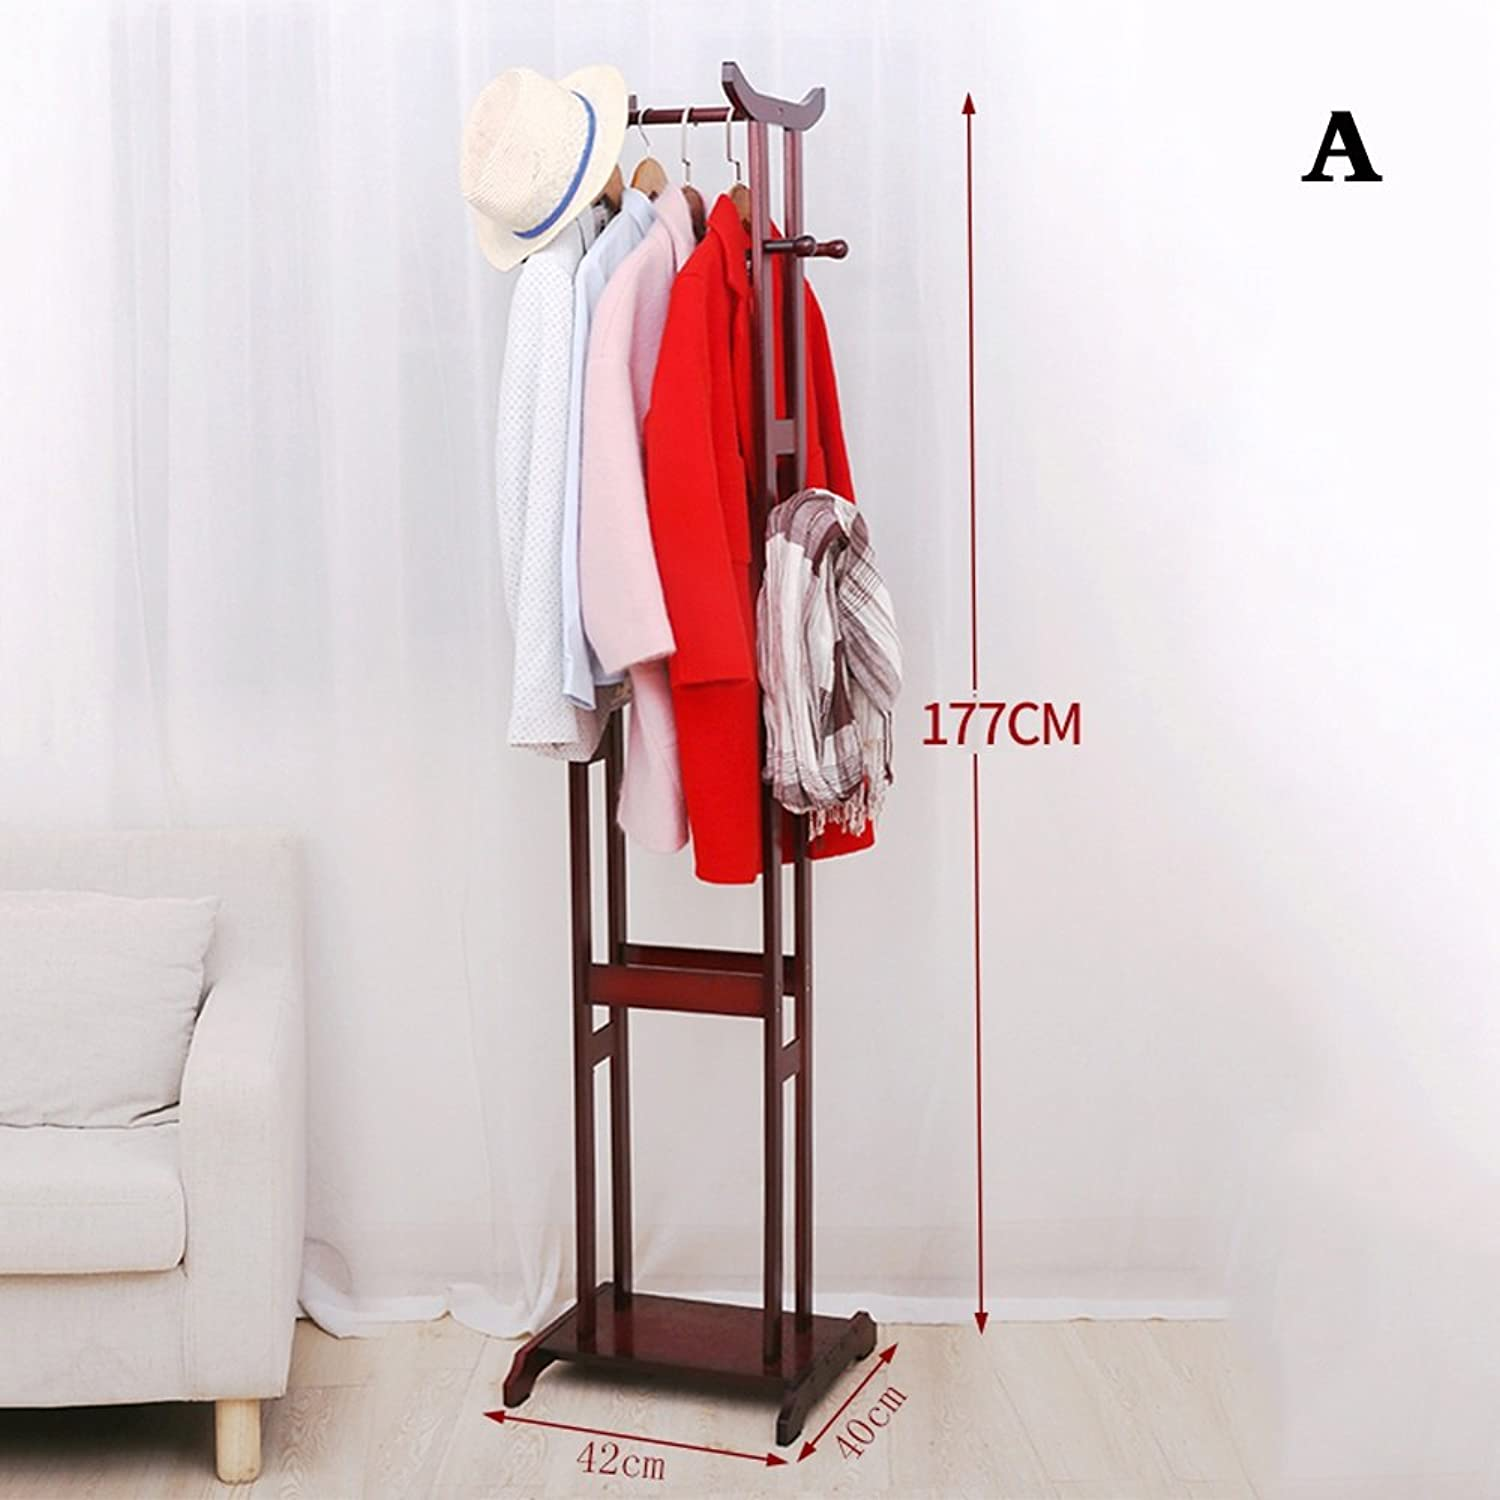 Coat Racks Solid Wood Landing Hangers Bedroom Modern Simple Clothes Shelves Simple Racks Racks Tighten The Thicker Chassis ( color   Brown , Size   42cm )